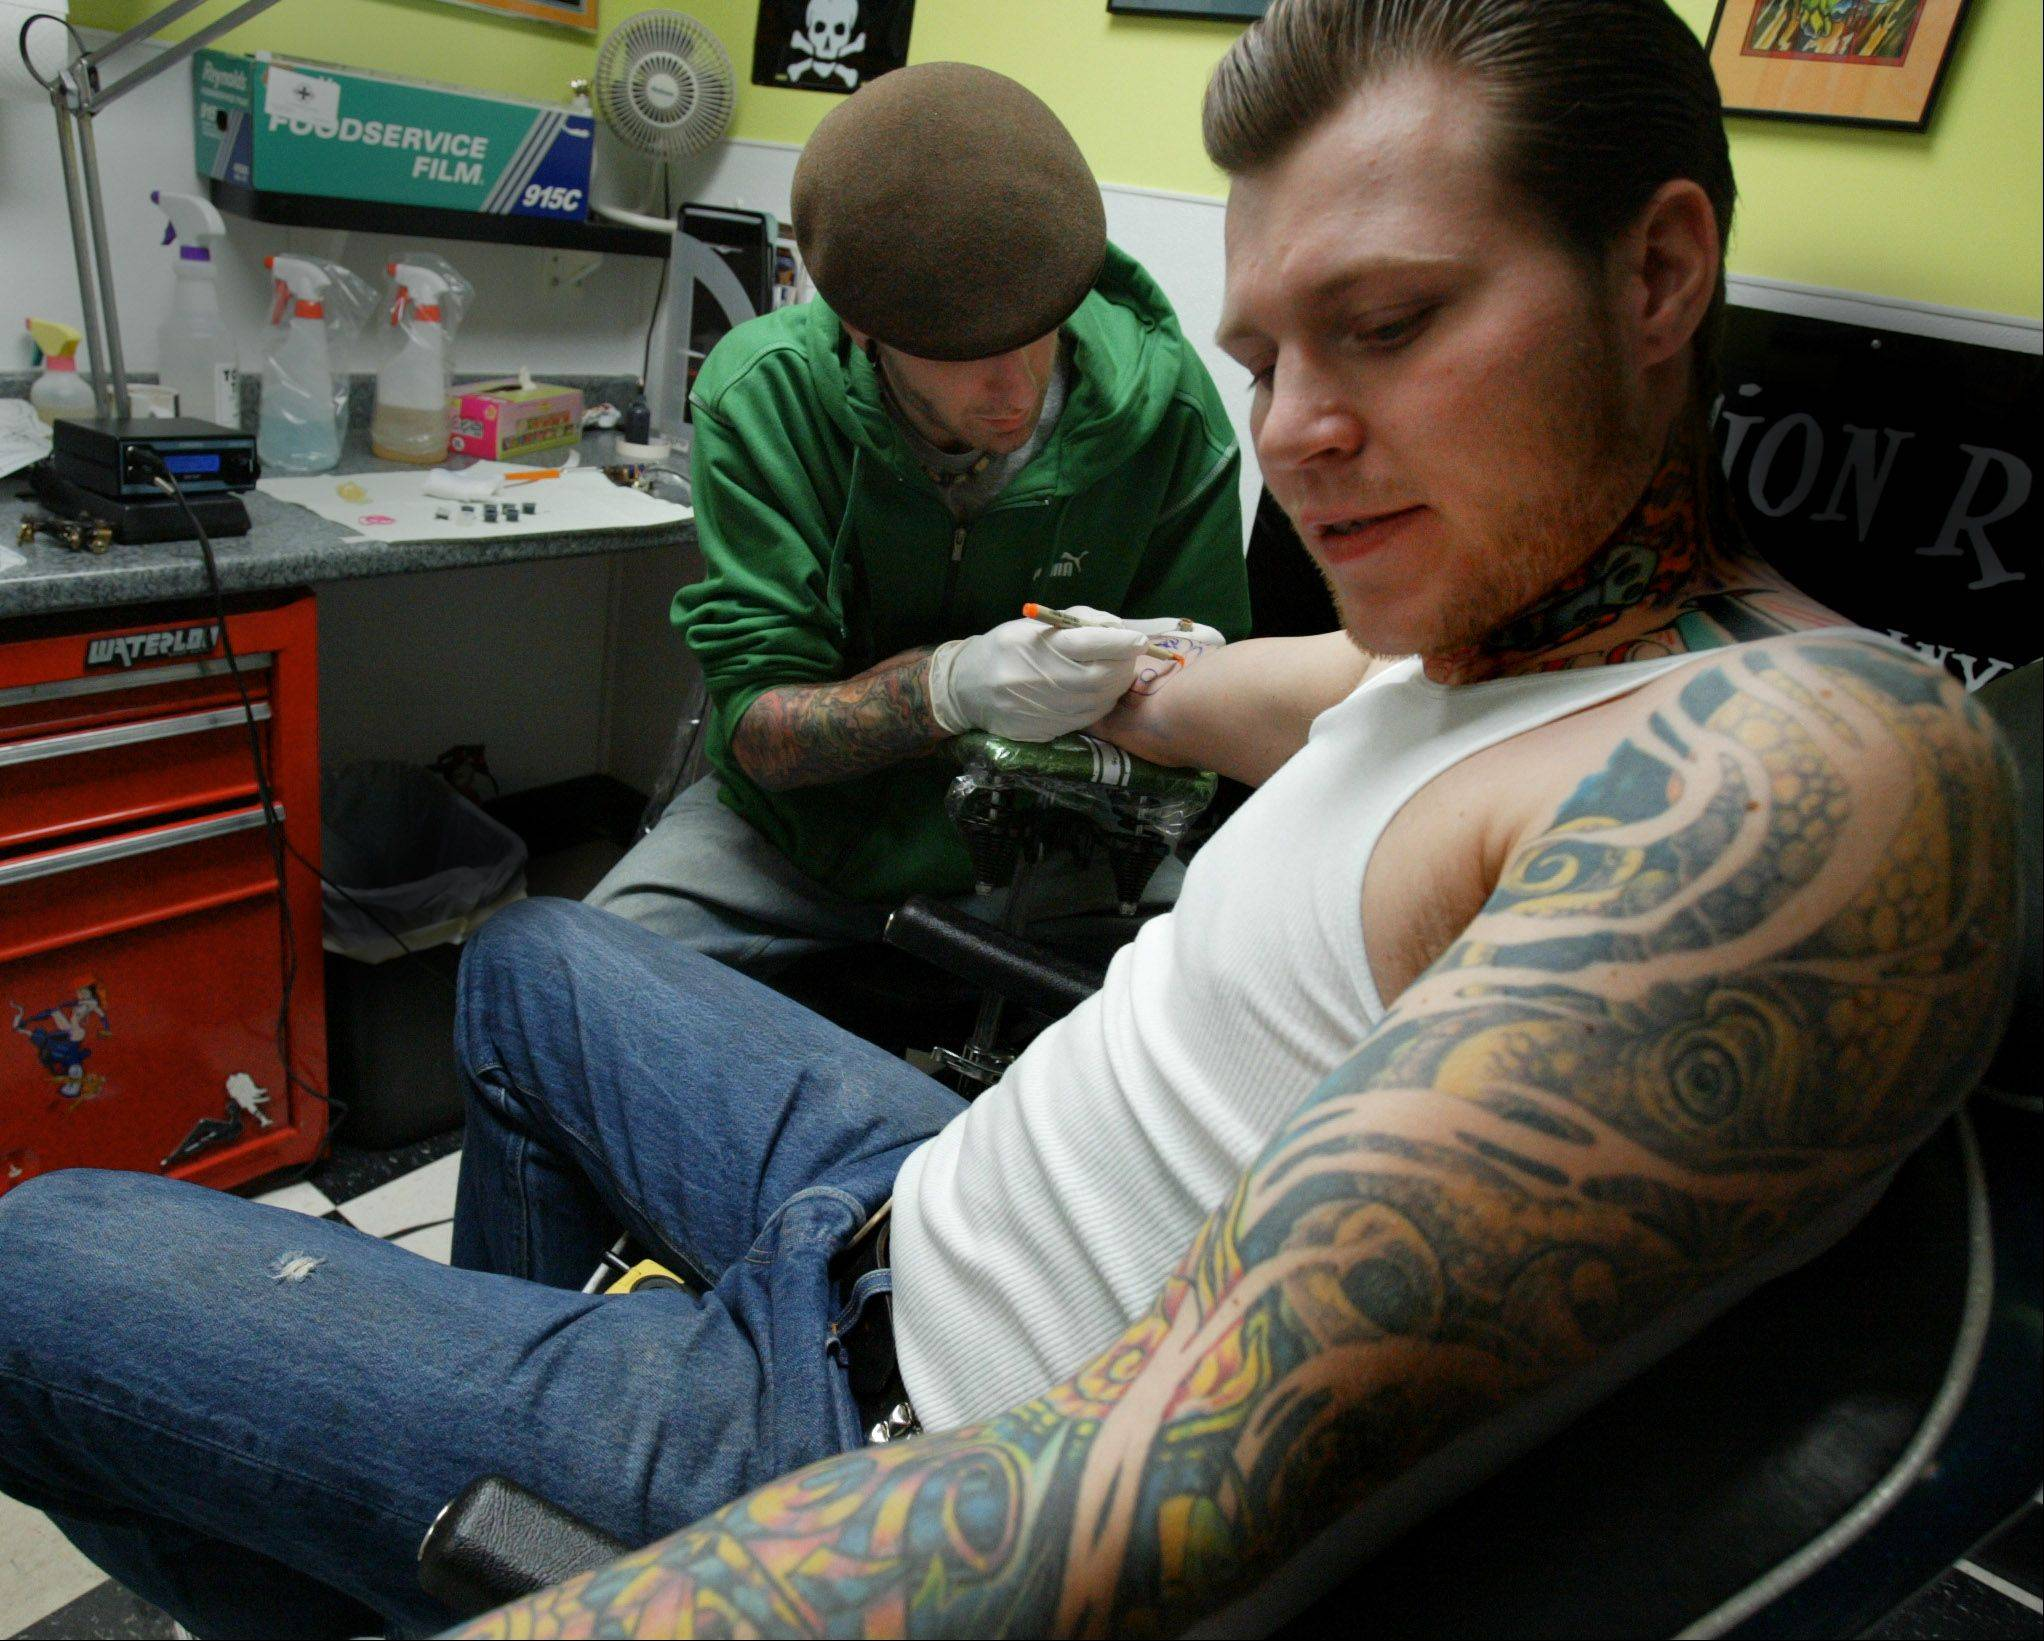 James Steinke, owner of Topnotch Tattoos in Elgin, now has more competition after the Elgin City Council approved a third tattoo parlor for downtown.